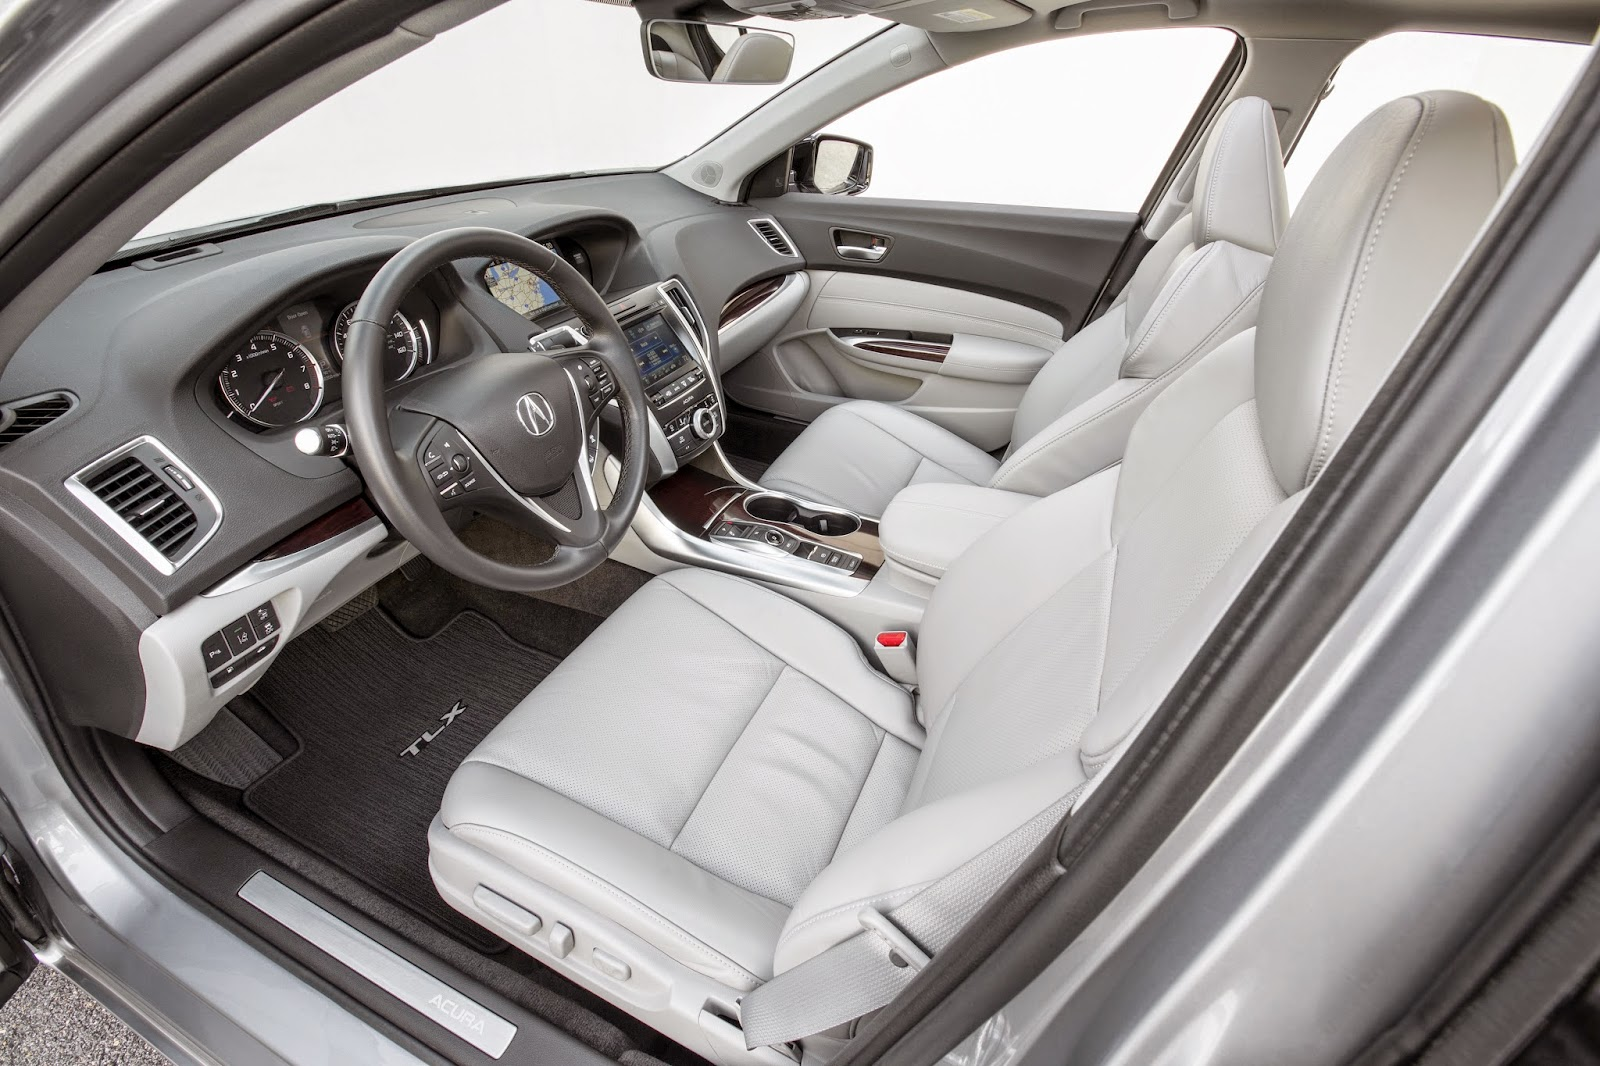 Interior view of 2015 Acura TLX.